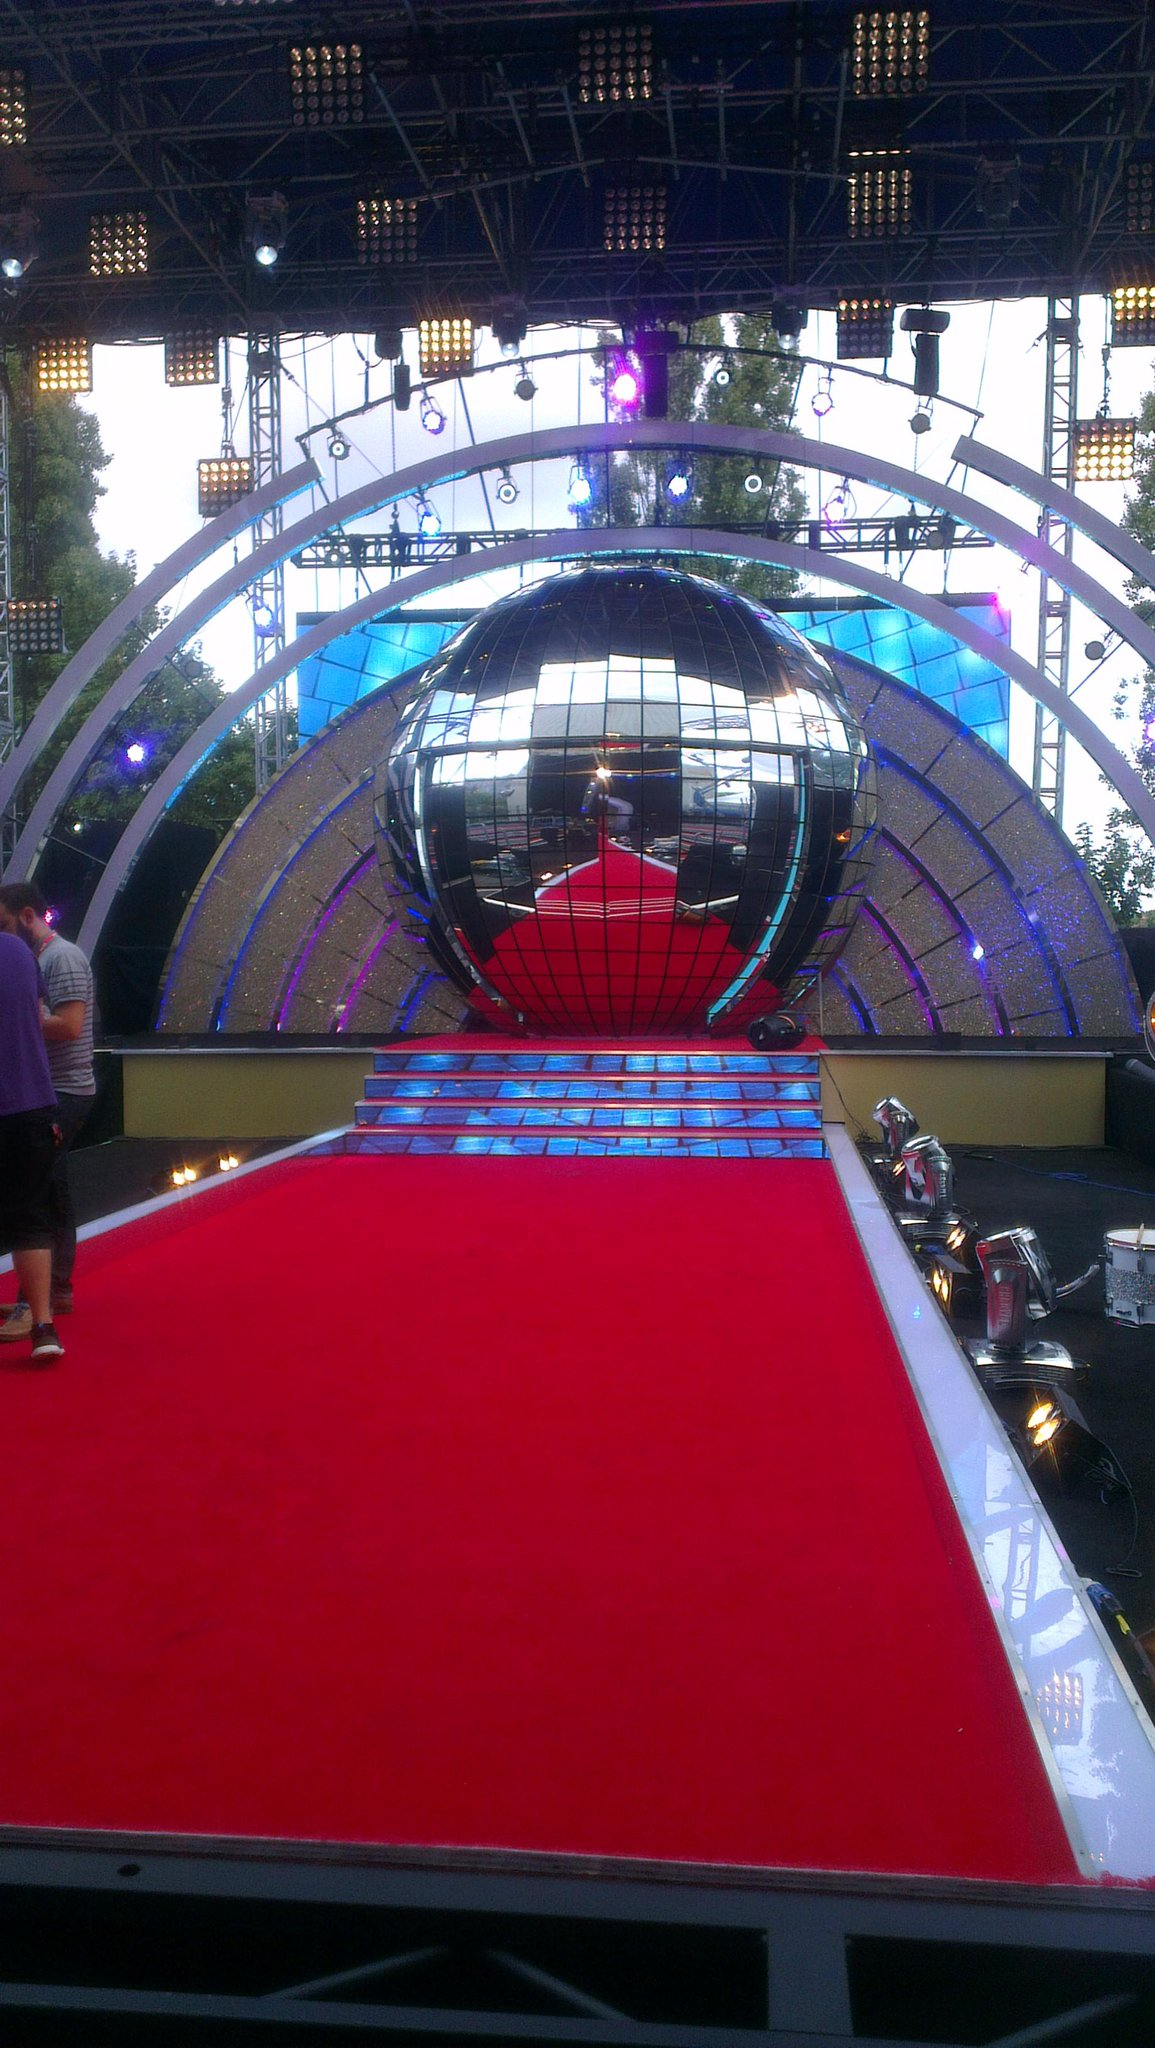 RT @TrentWhiddon: It's all Strictly business here as the red carpet awaits! @bbcstrictly http://t.co/p3iSym8lsJ